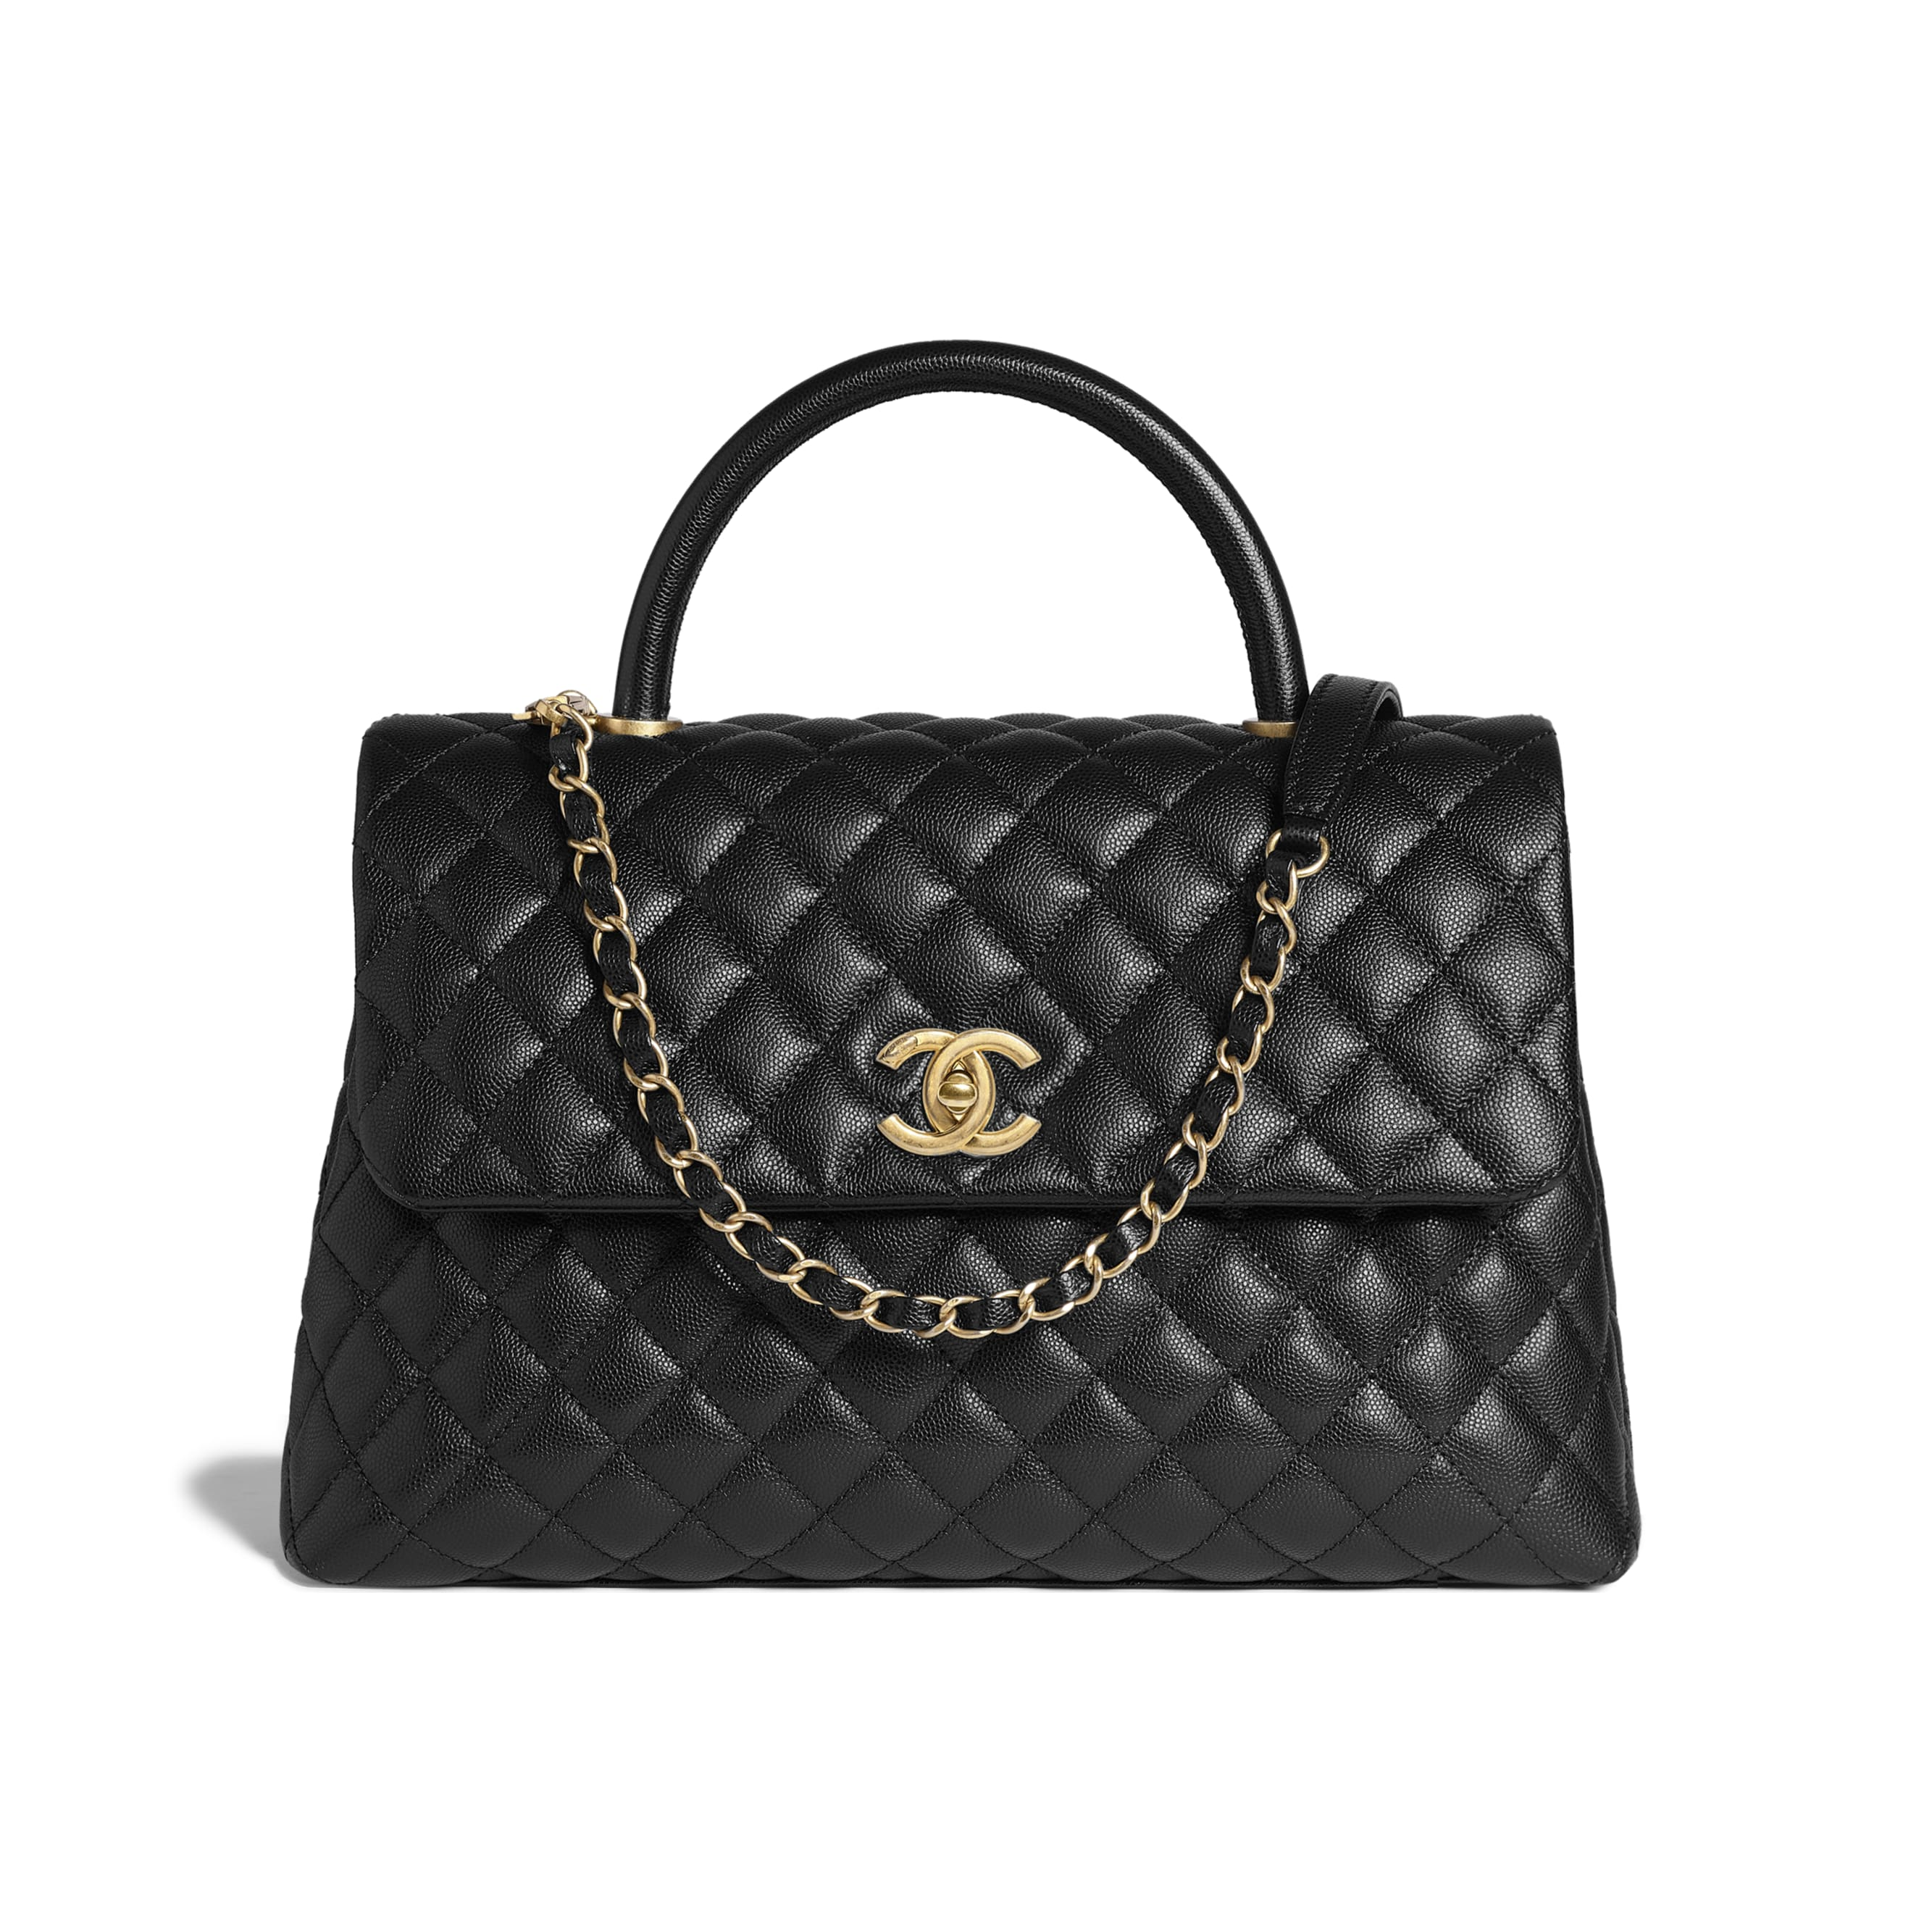 Large Flap Bag With Top Handle - Black - Grained Calfskin & Gold-Tone Metal - Default view - see standard sized version